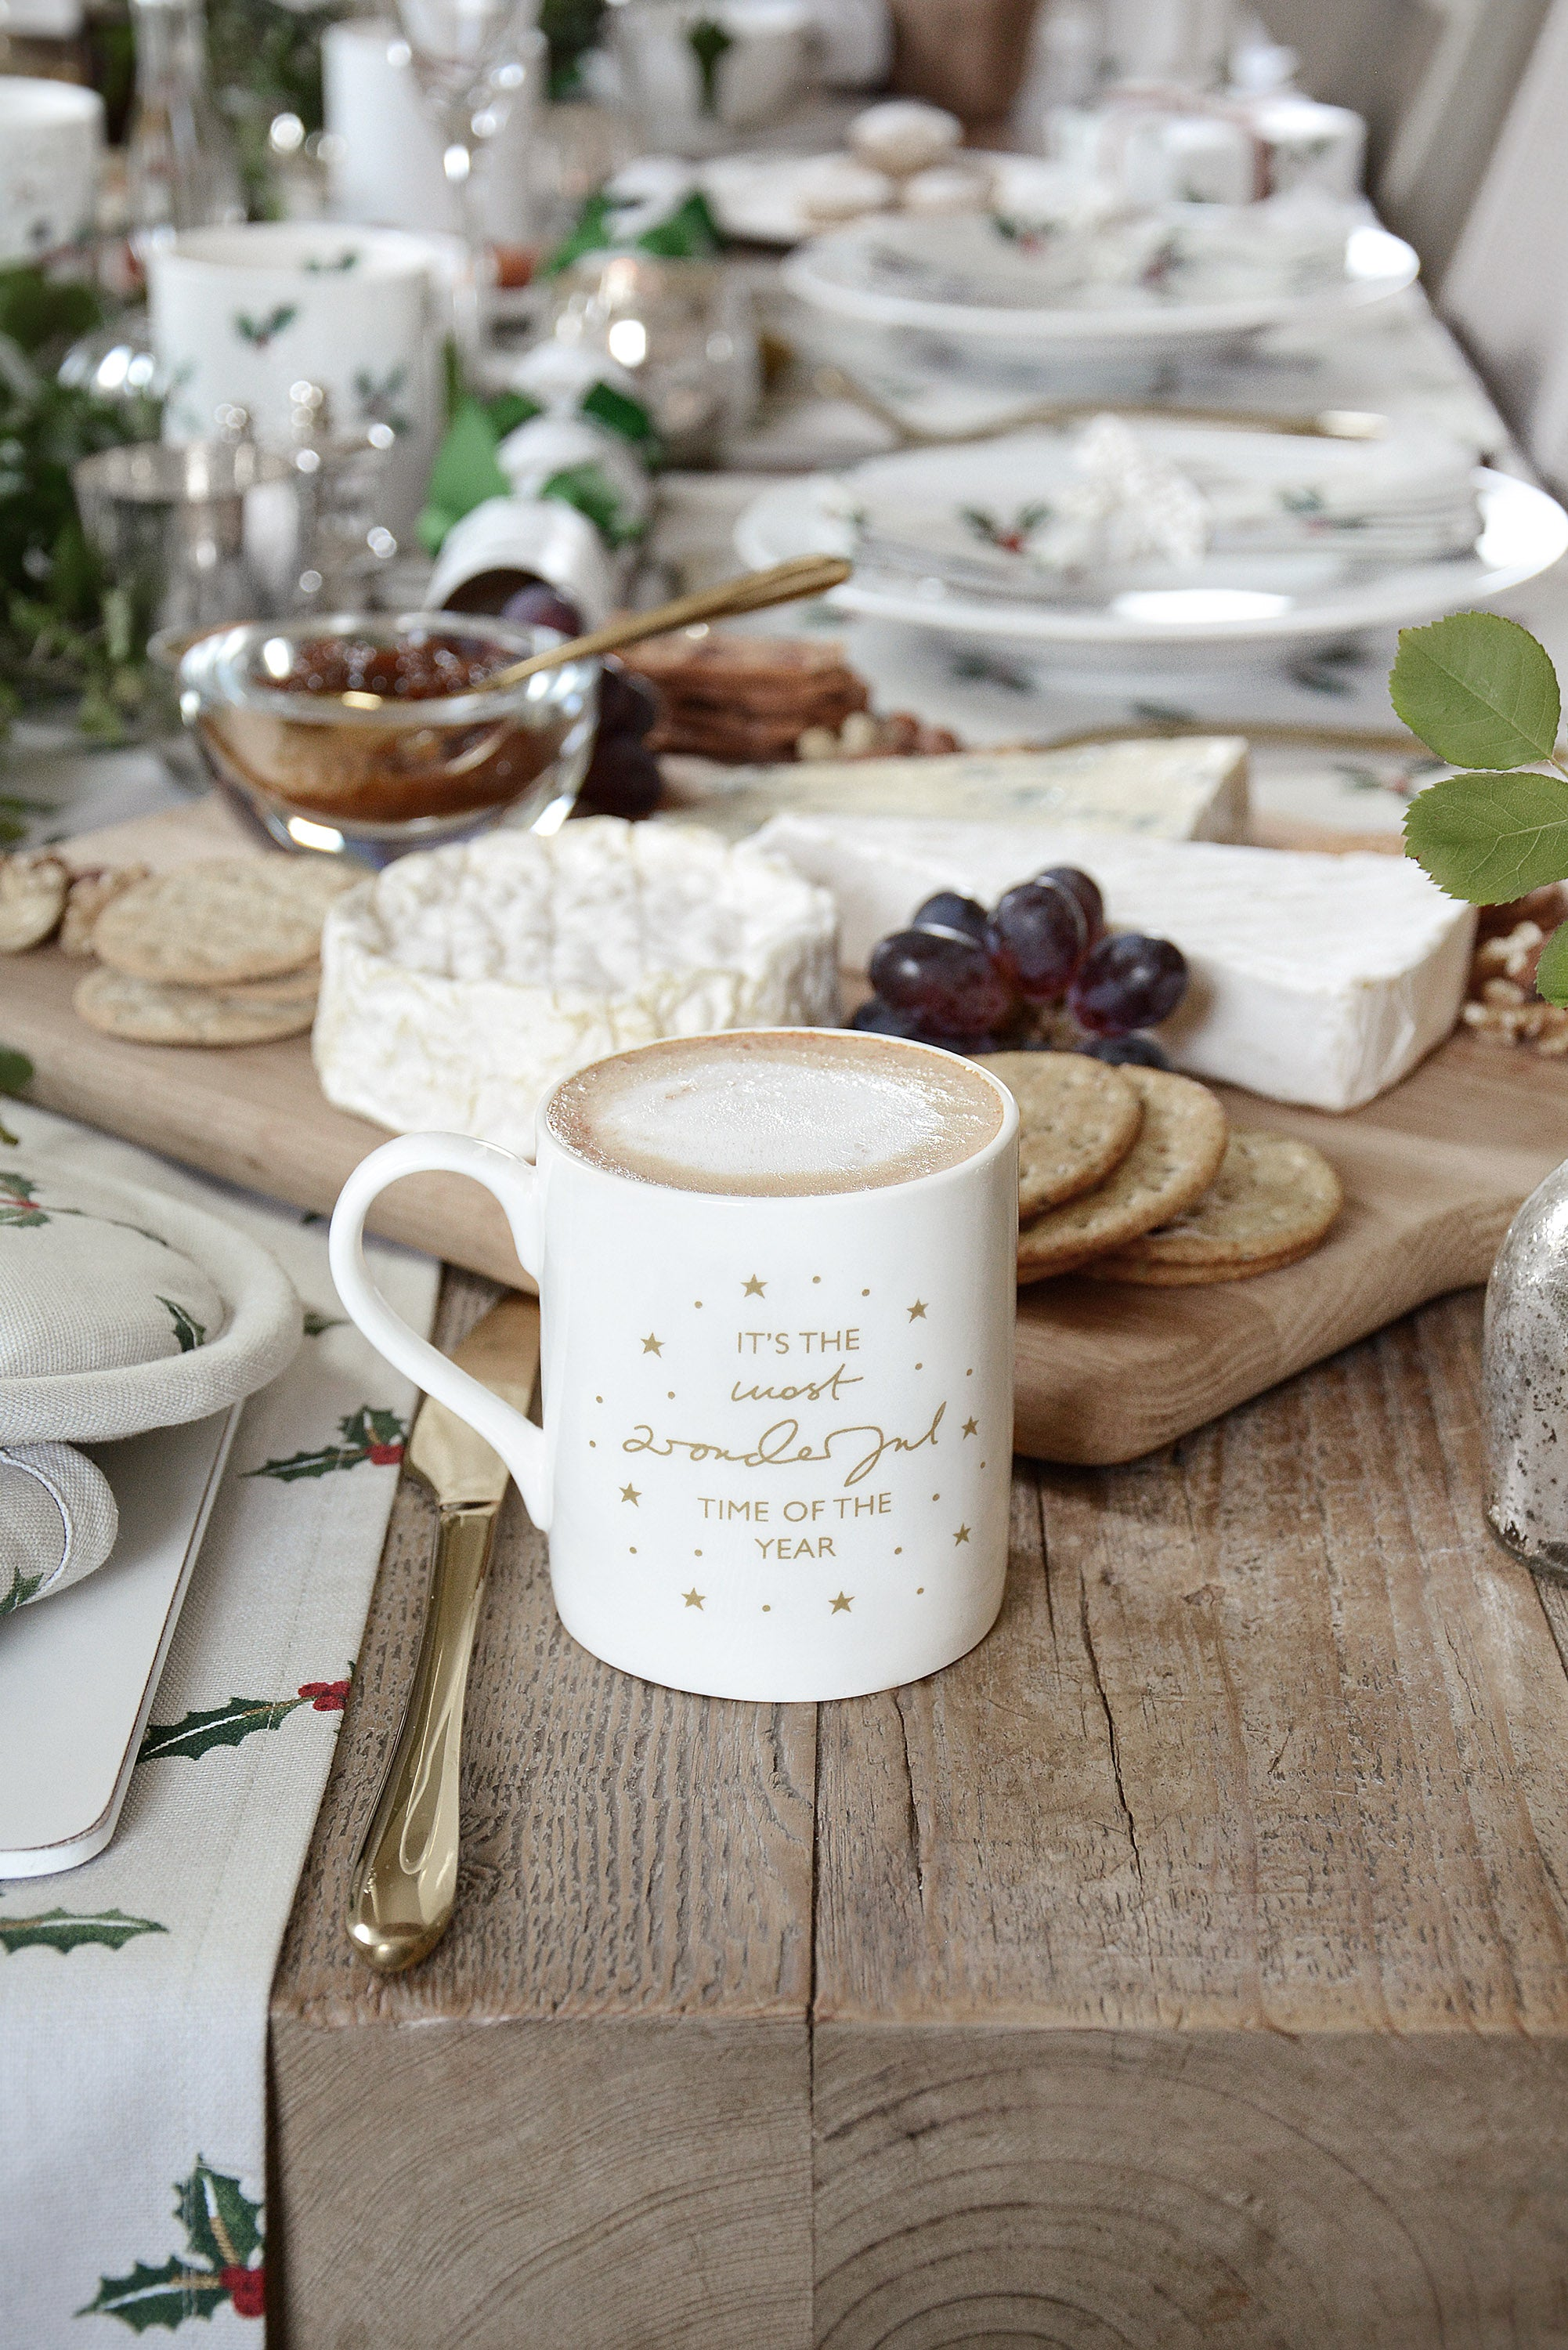 Read all about Sophie Allports favourites from the Black Friday Sale